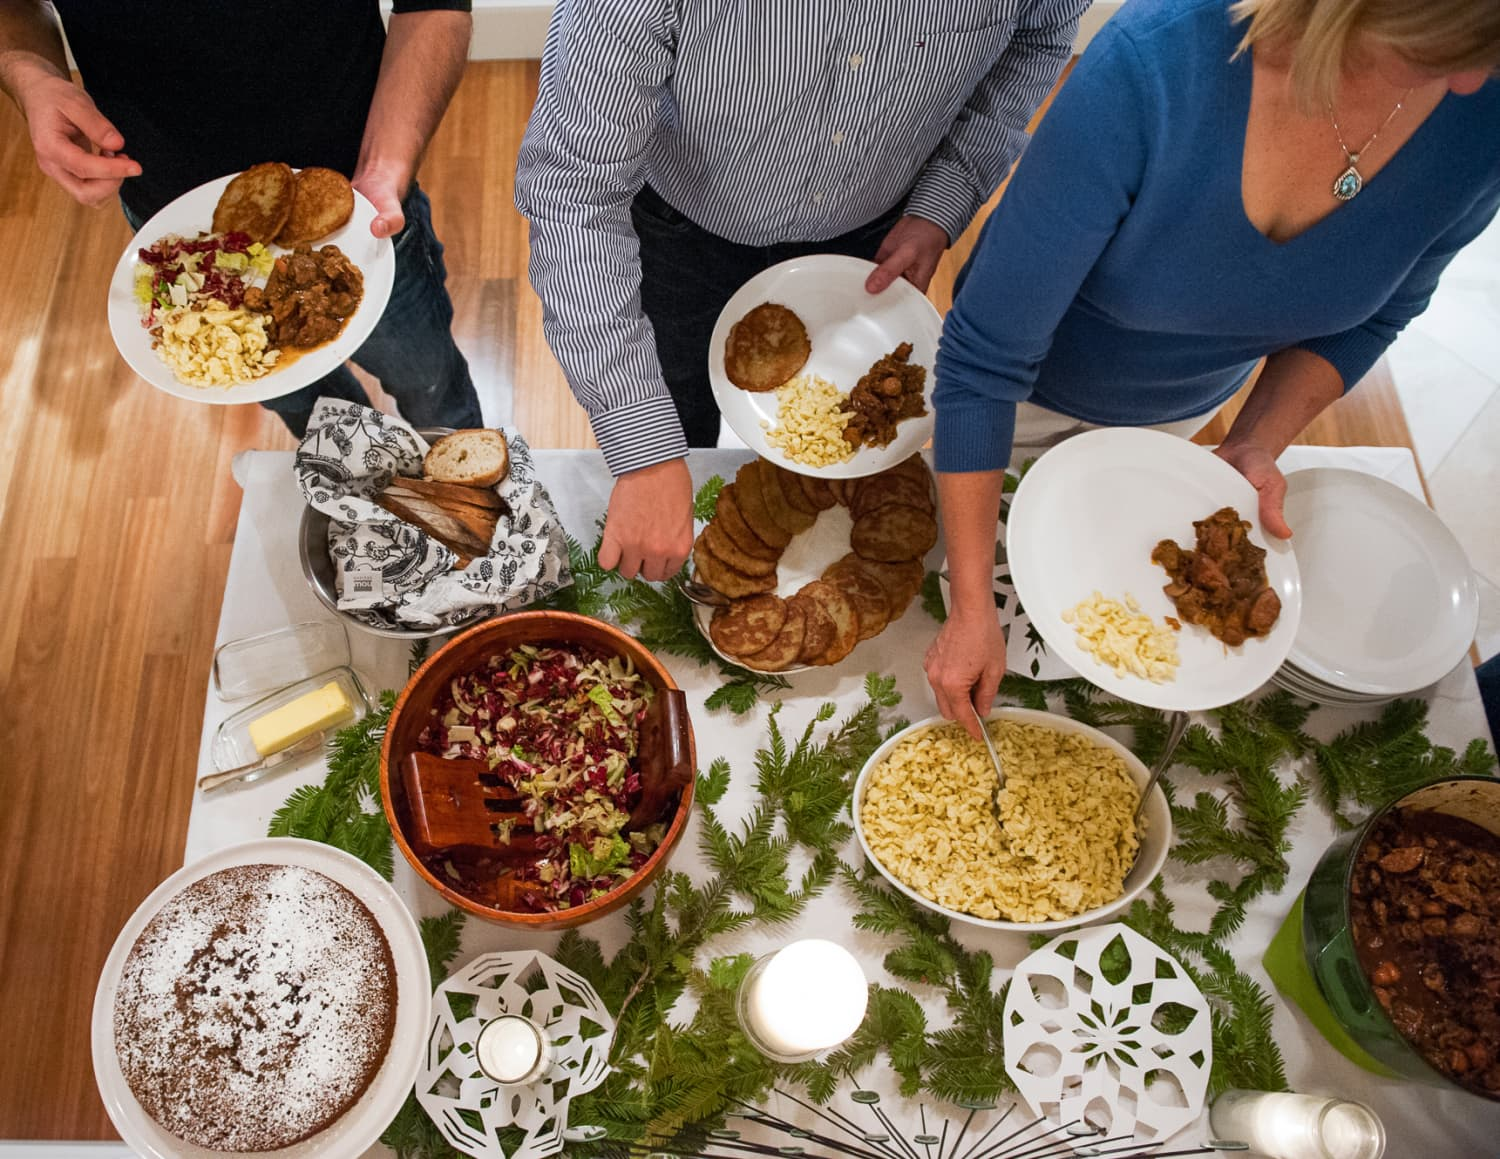 5 Tips for Setting Up a Better Holiday Buffet